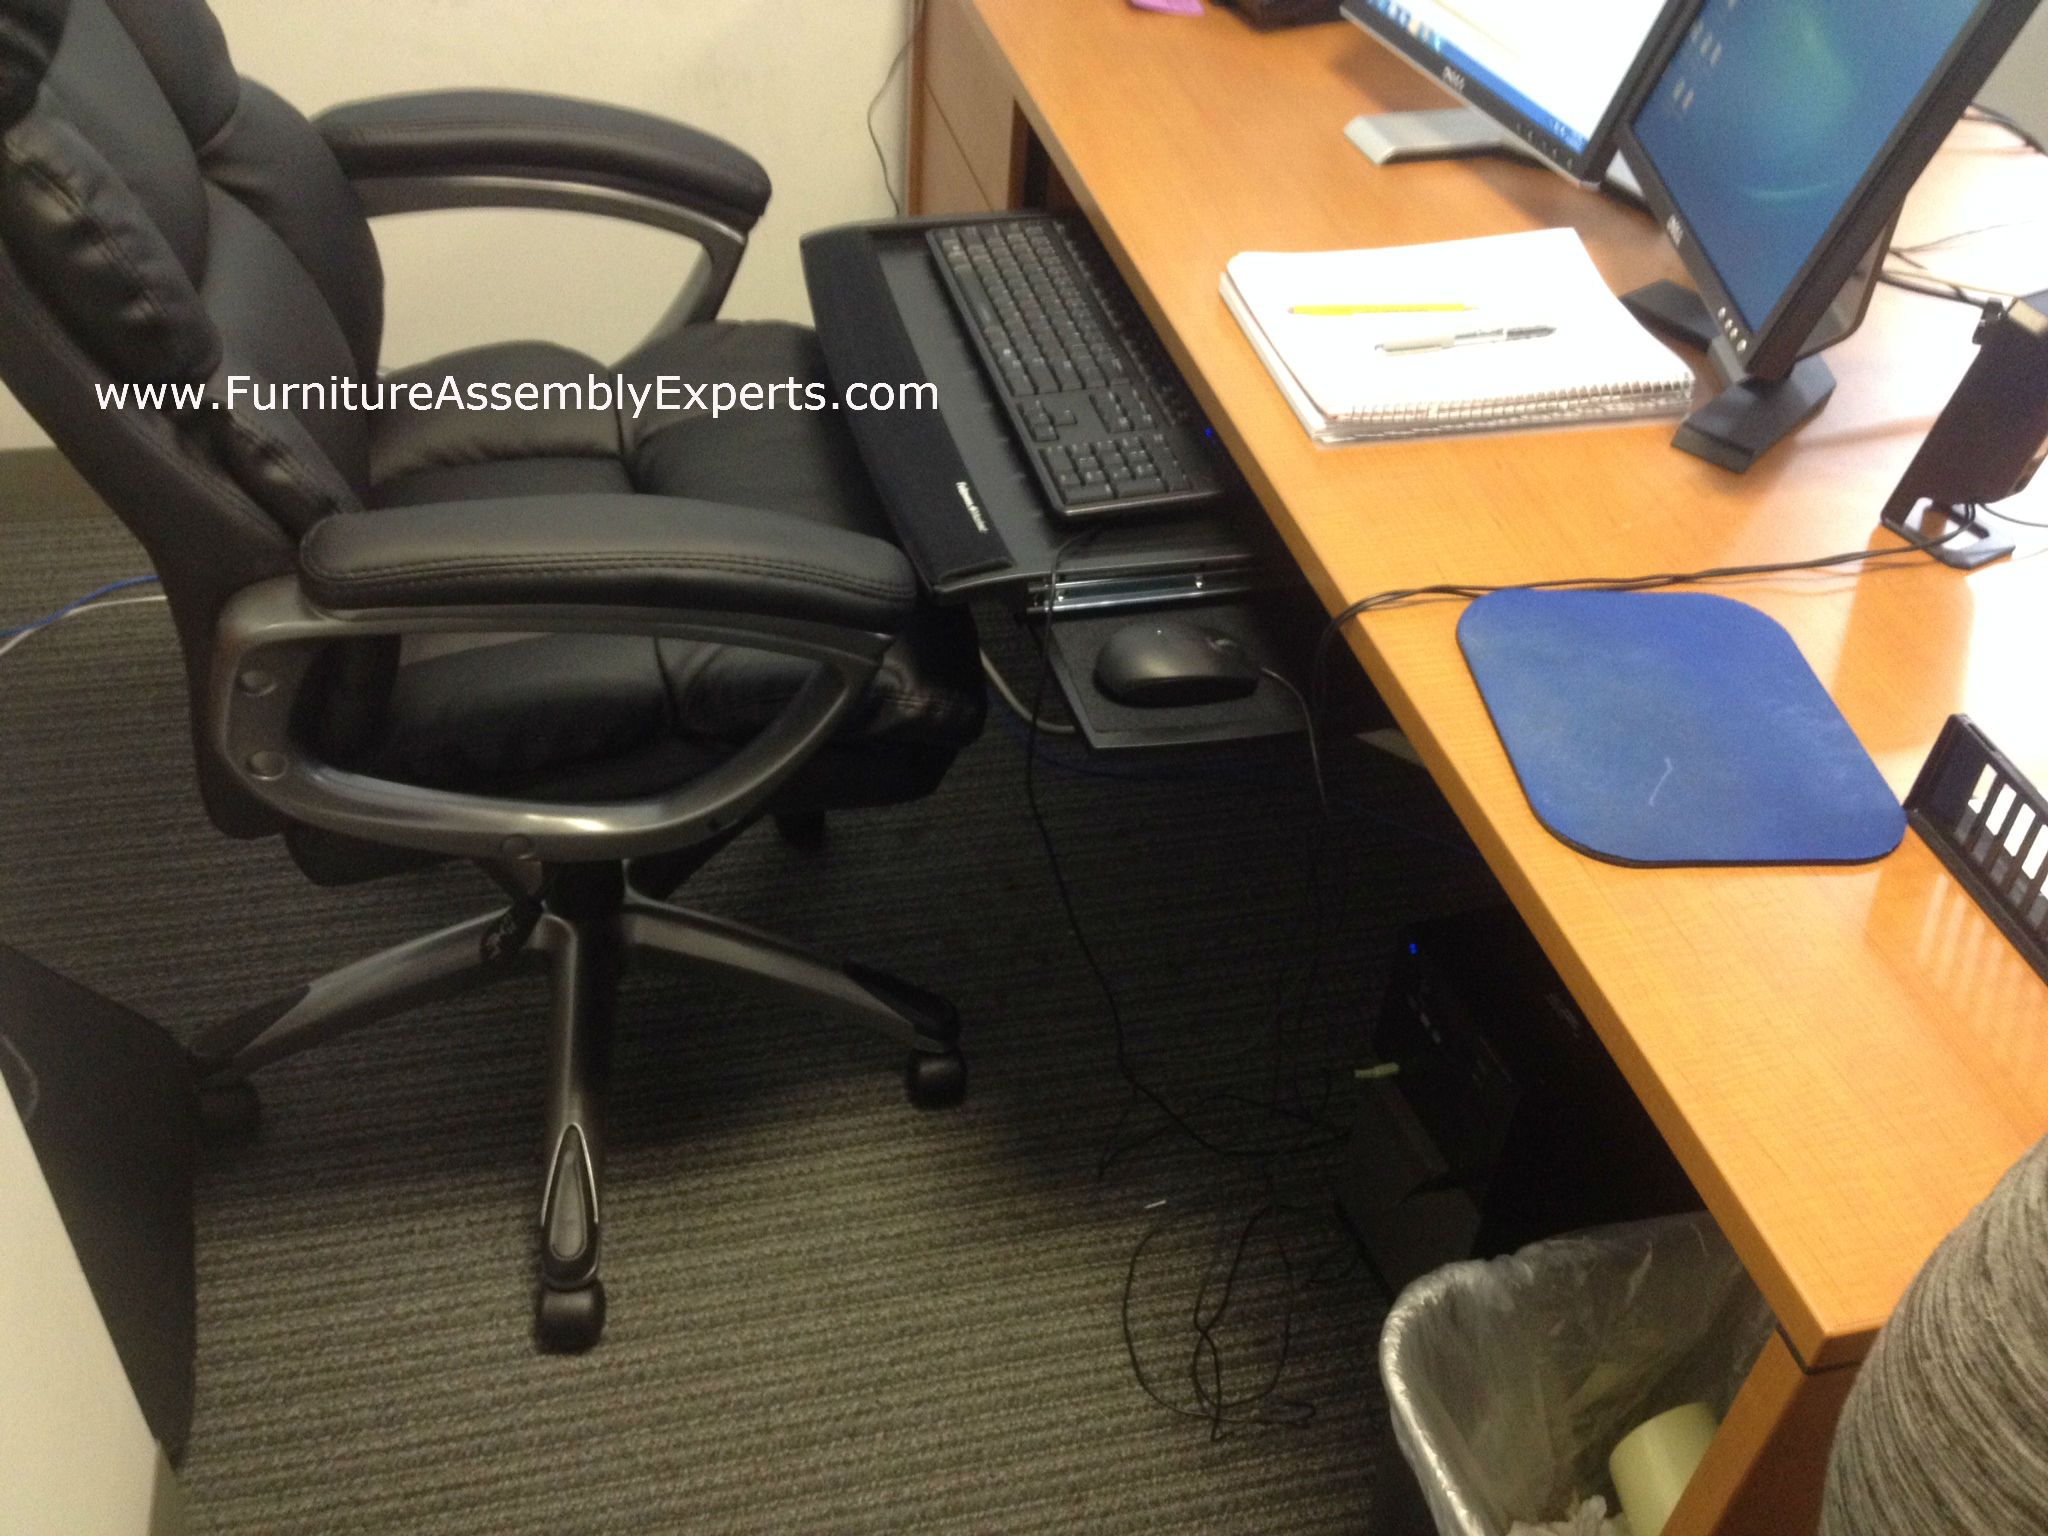 Office Desk Keyboard Tray Installed For A Company In Bethesda MD By  Furniture Assembly Experts LLC